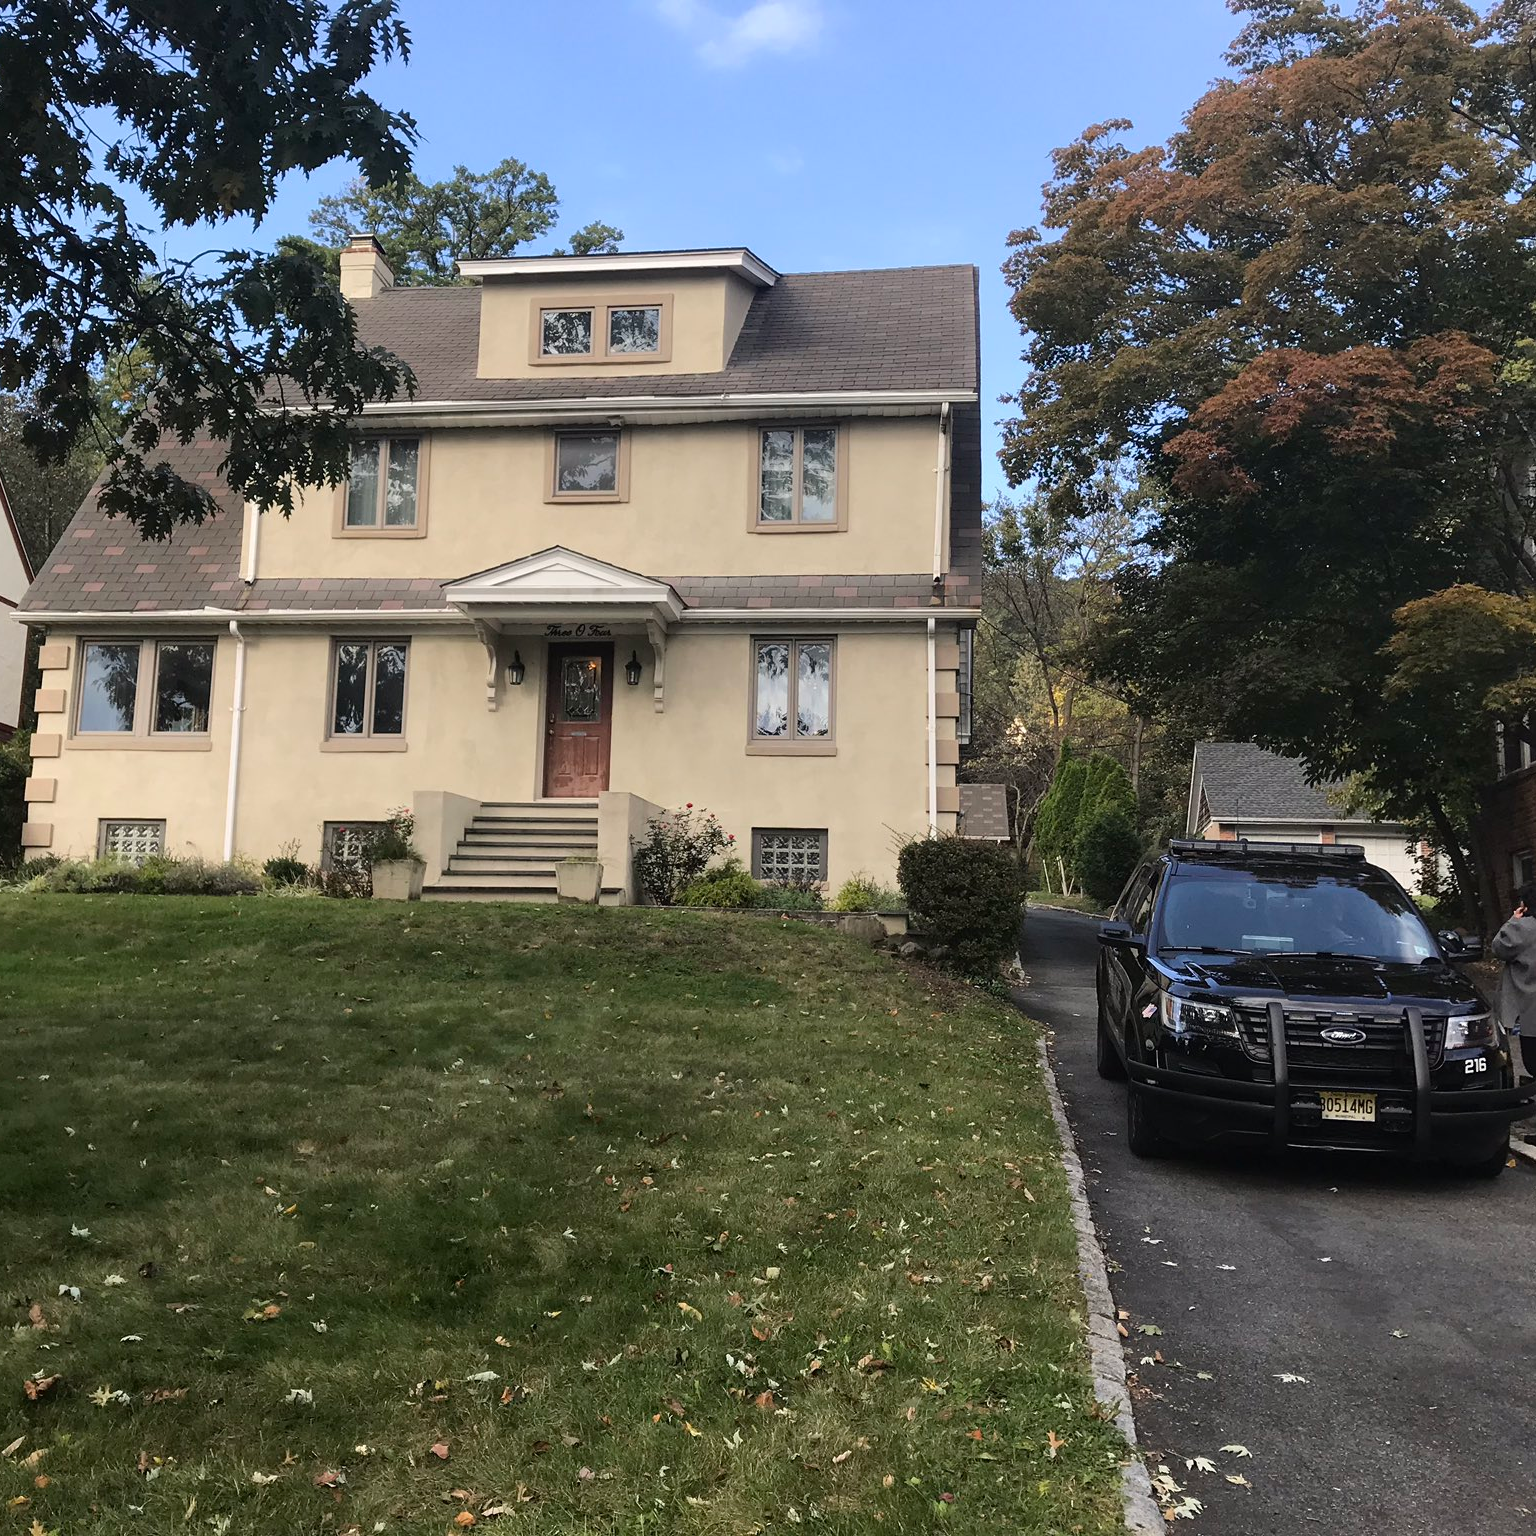 Montclair woman found fatally shot in home; suspect remains at large